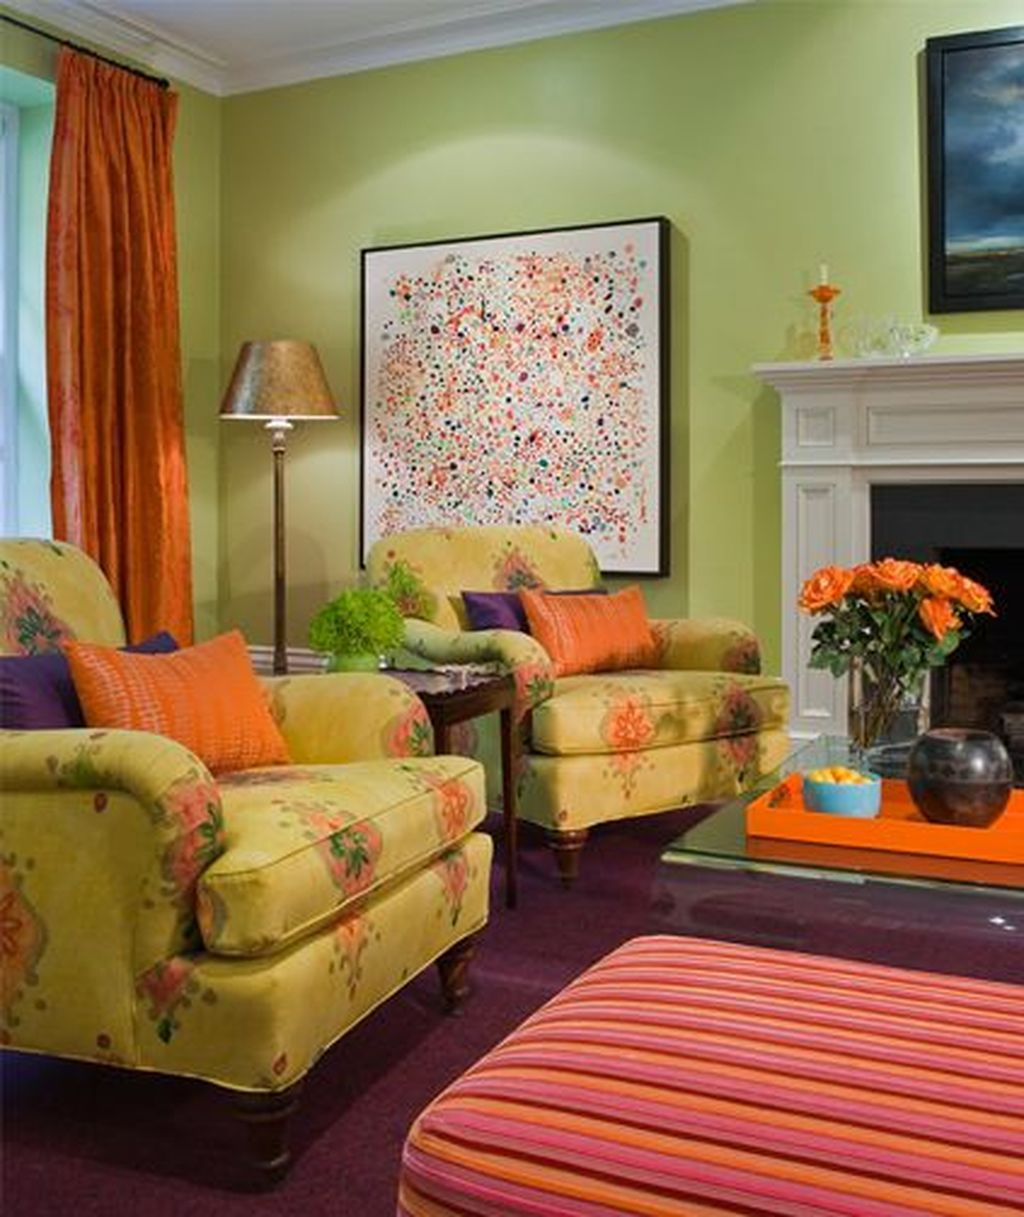 41 Inspiring Living Room Color Schemes Ideas Will Make Space Beautiful